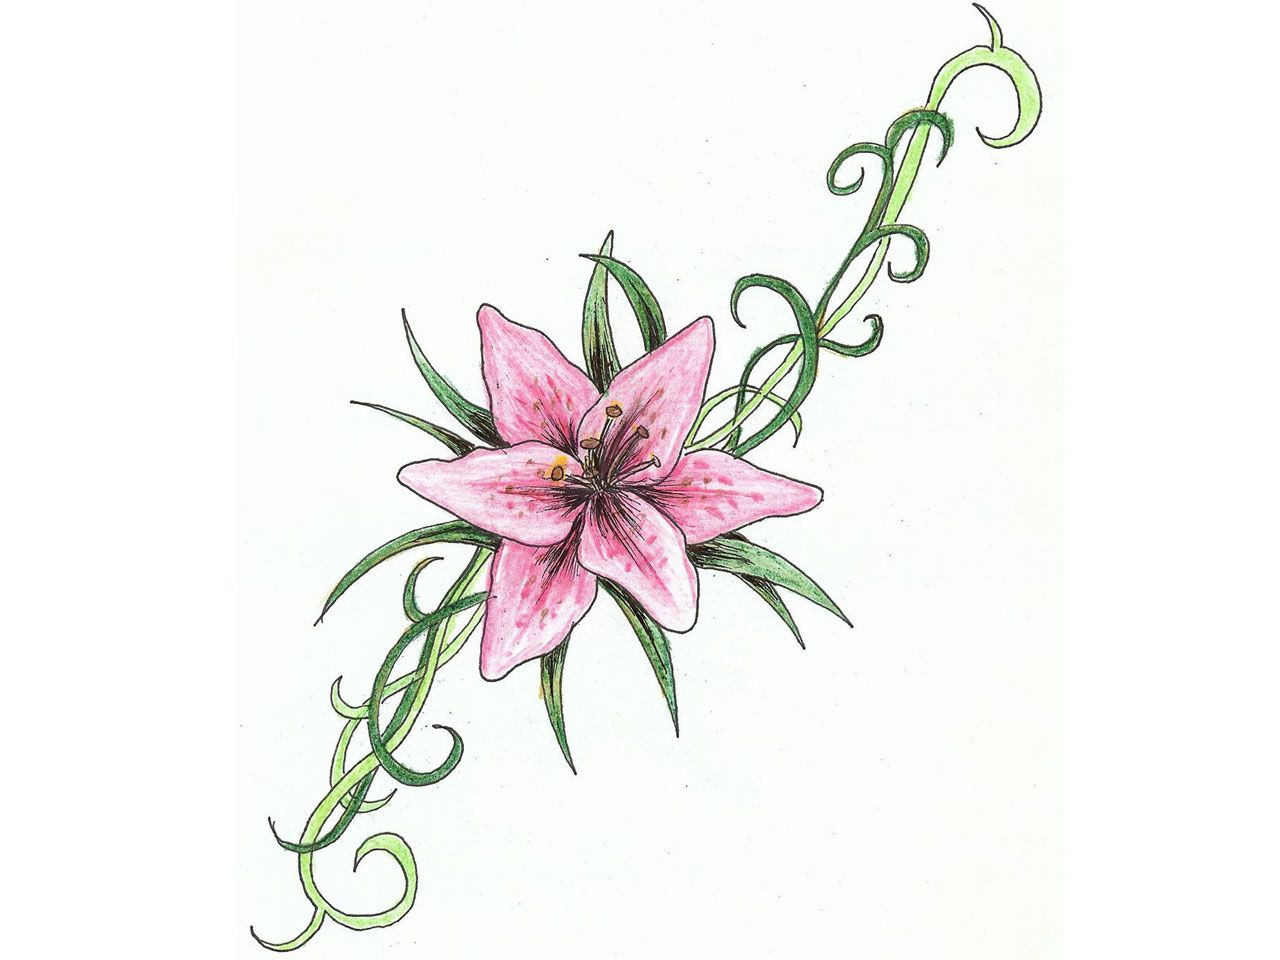 Pink lily flower tattoos my style pinterest free design lily pink lily flower tattoos izmirmasajfo